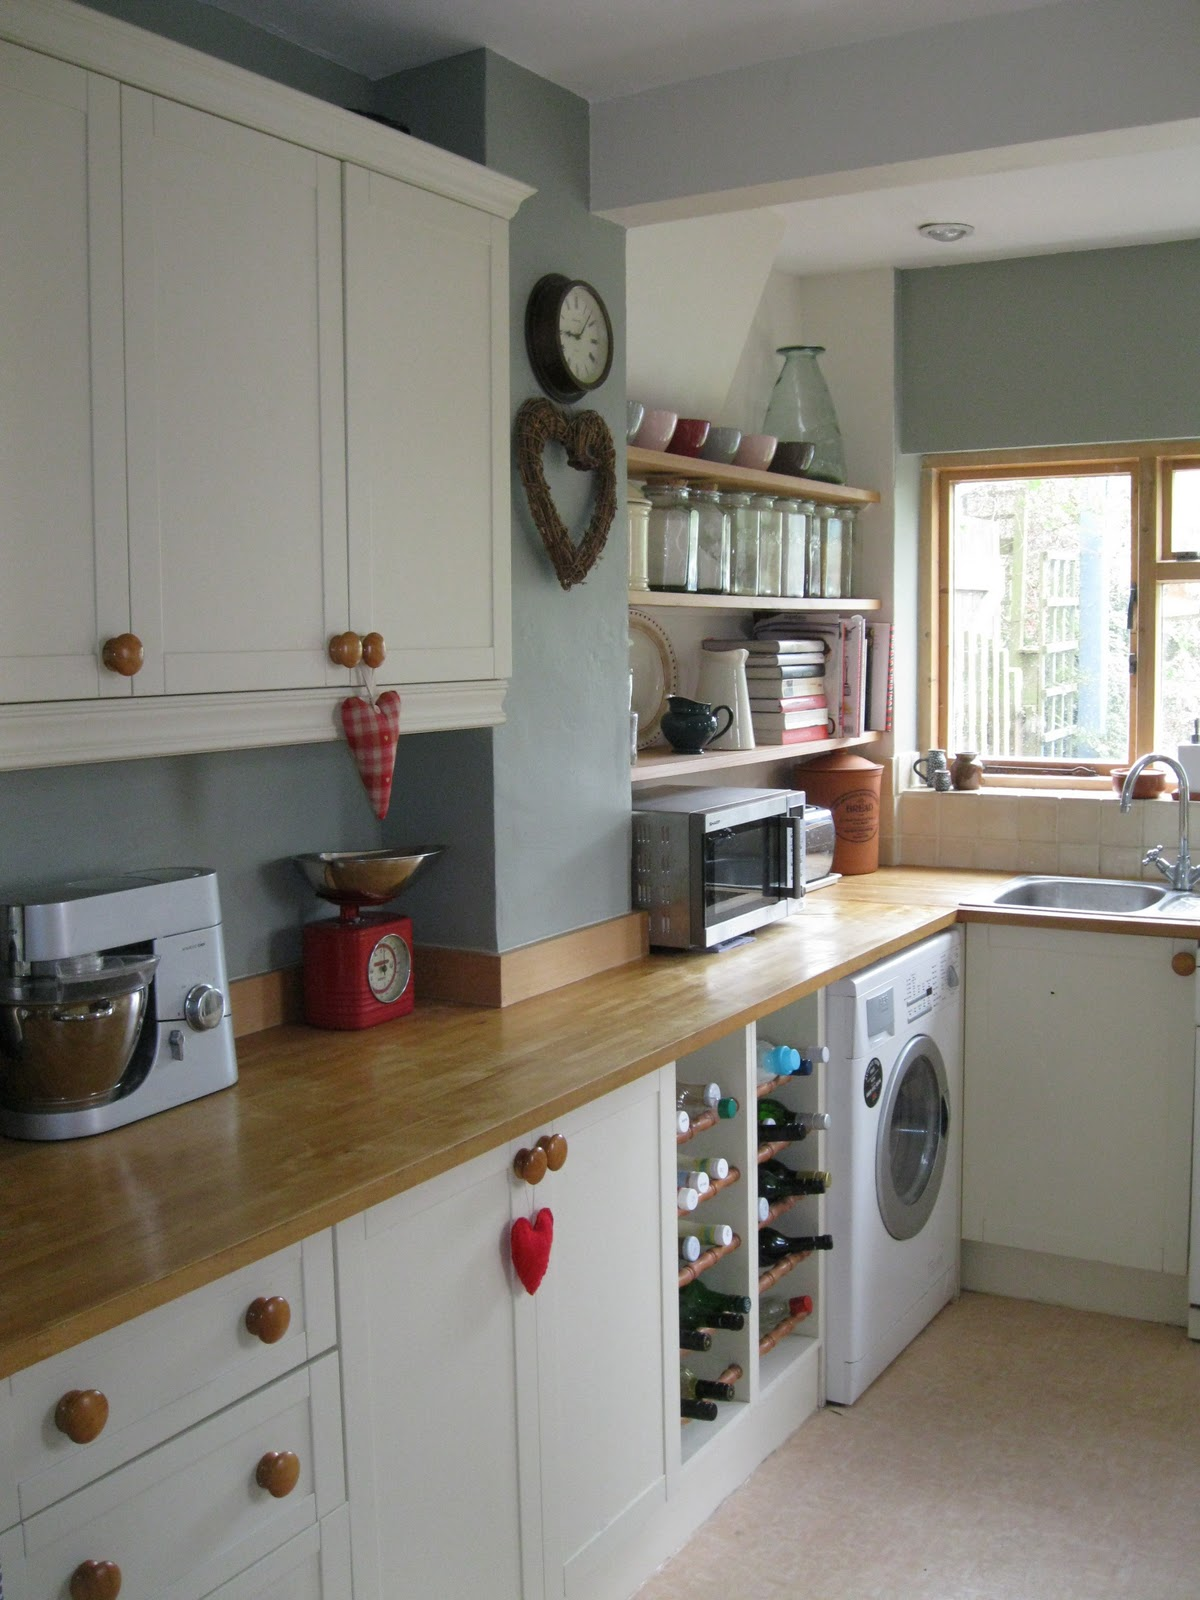 Small Kitchen Design Ideas Uk astounding kitchen cabinet colour ideas uk photos - best image